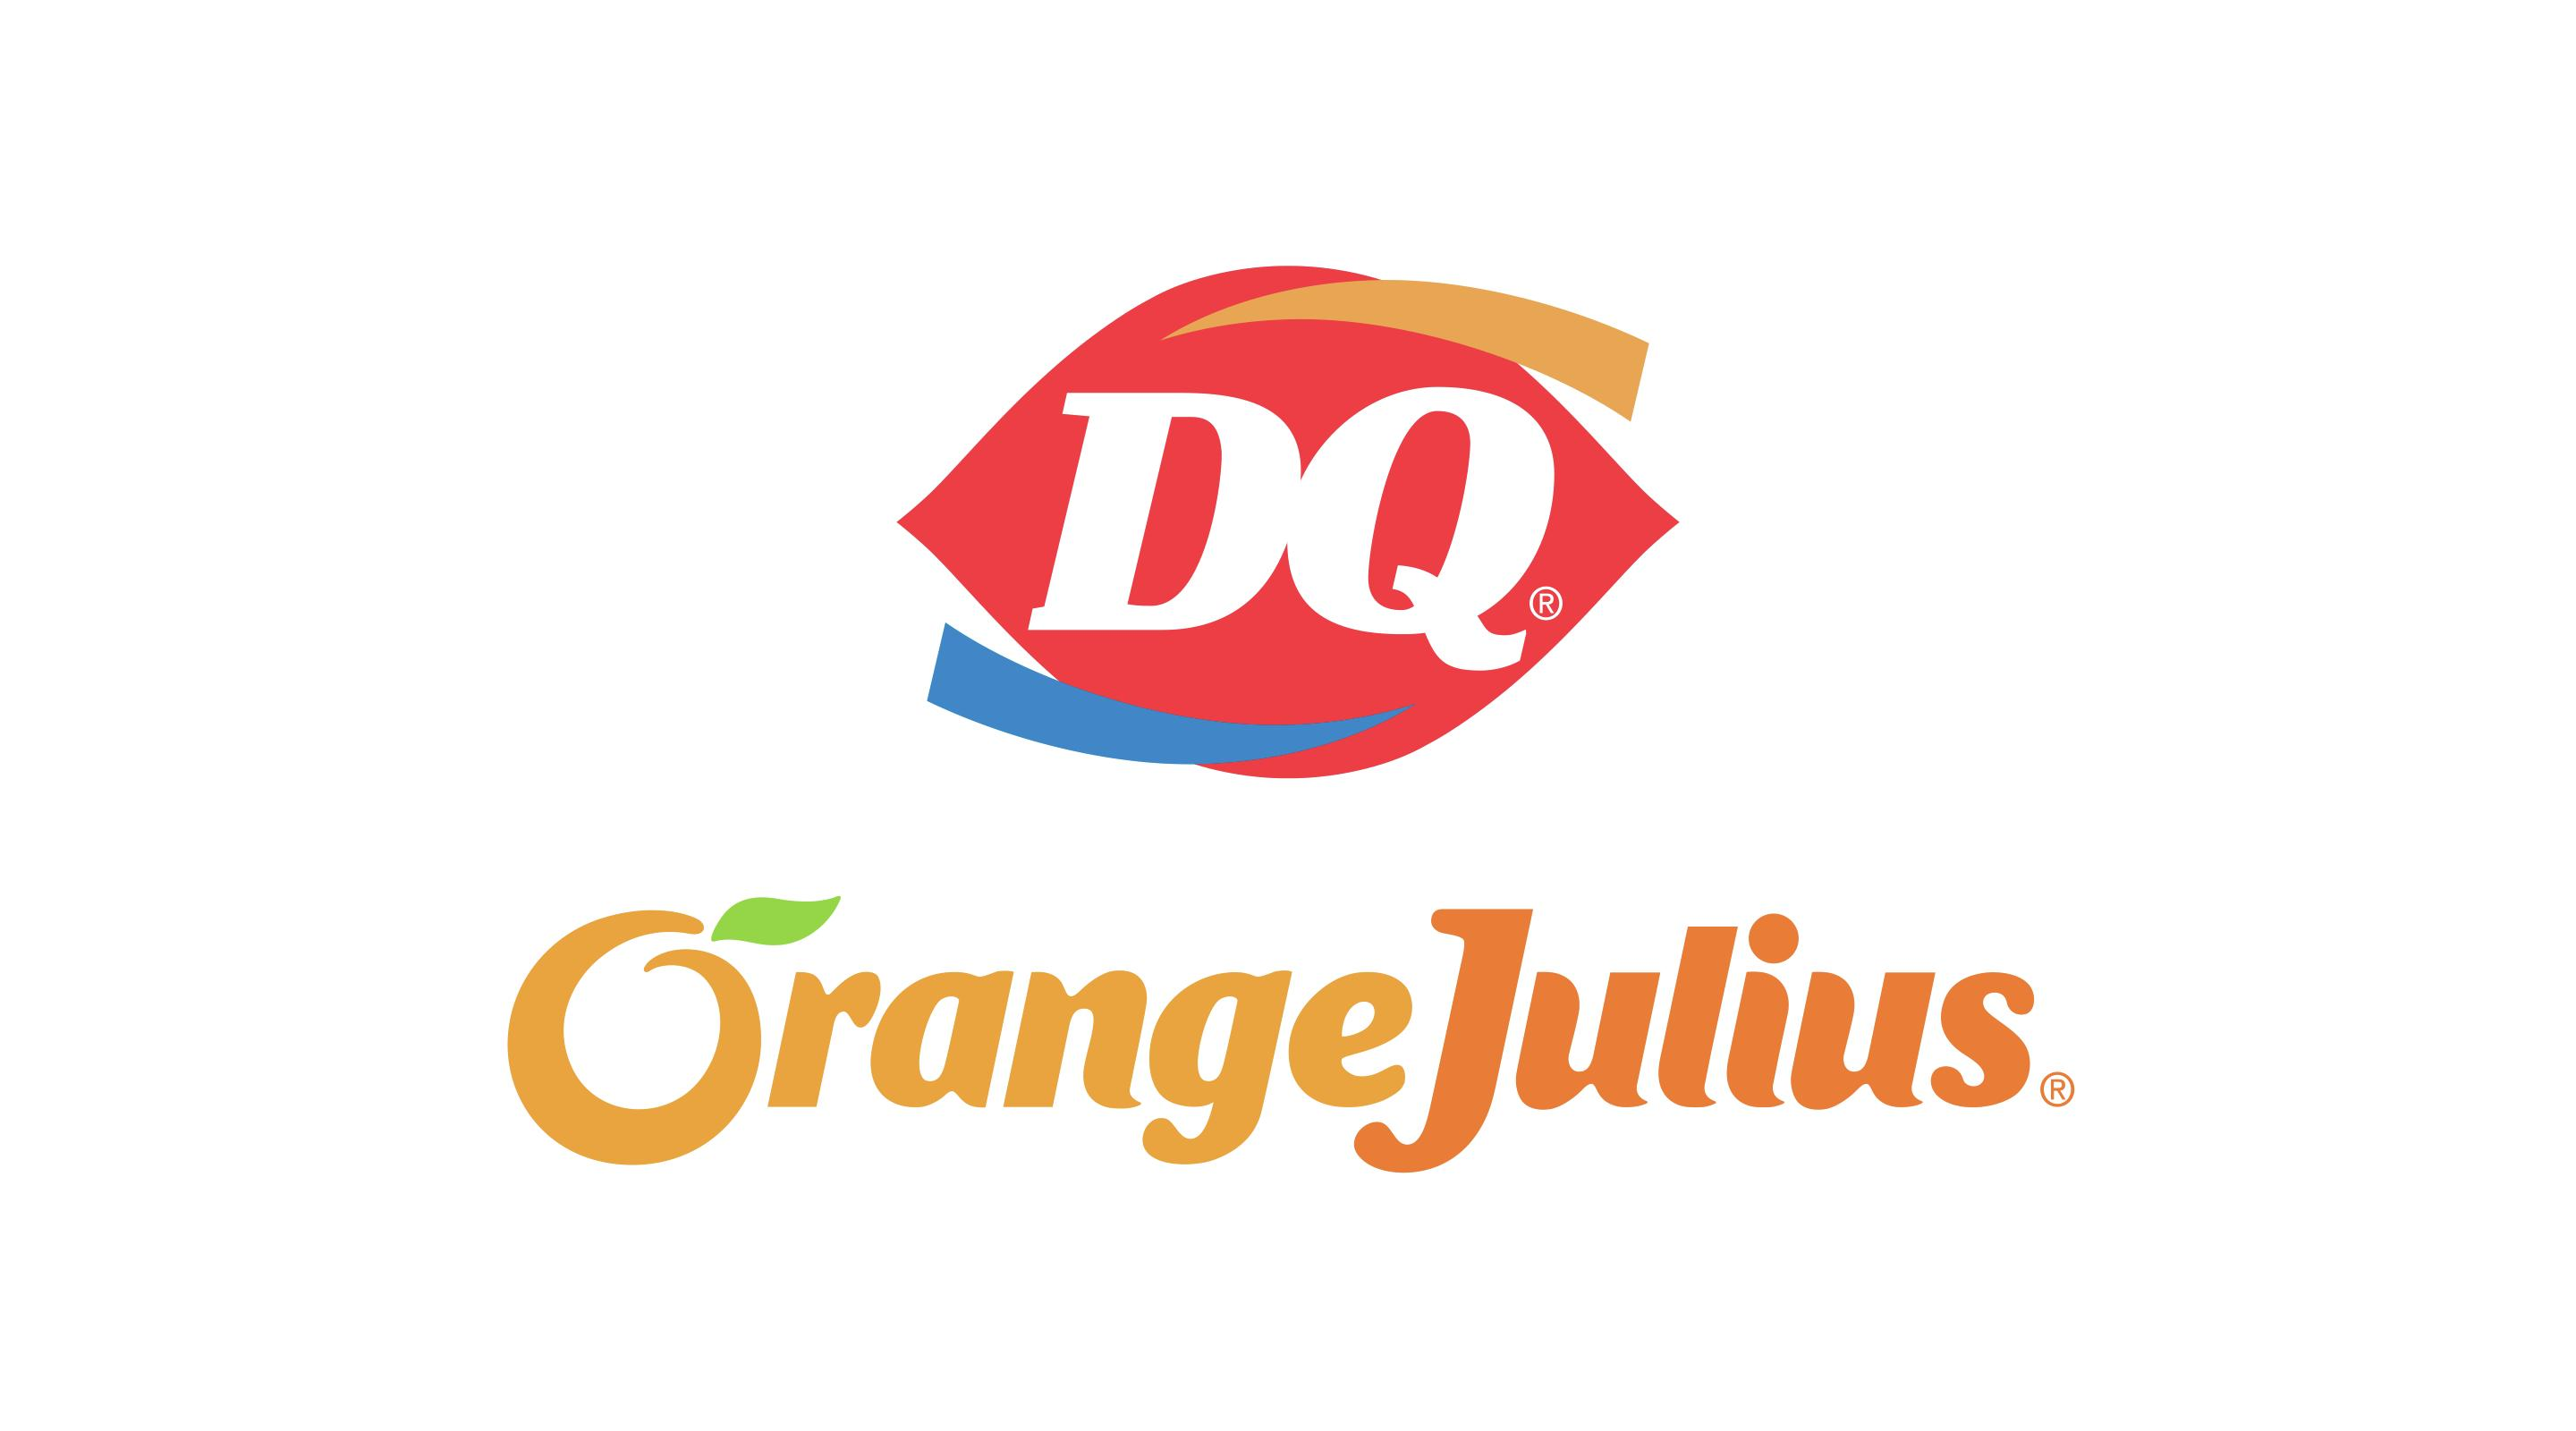 This is a large image of the Dairy Queen and Orange Julius logos.